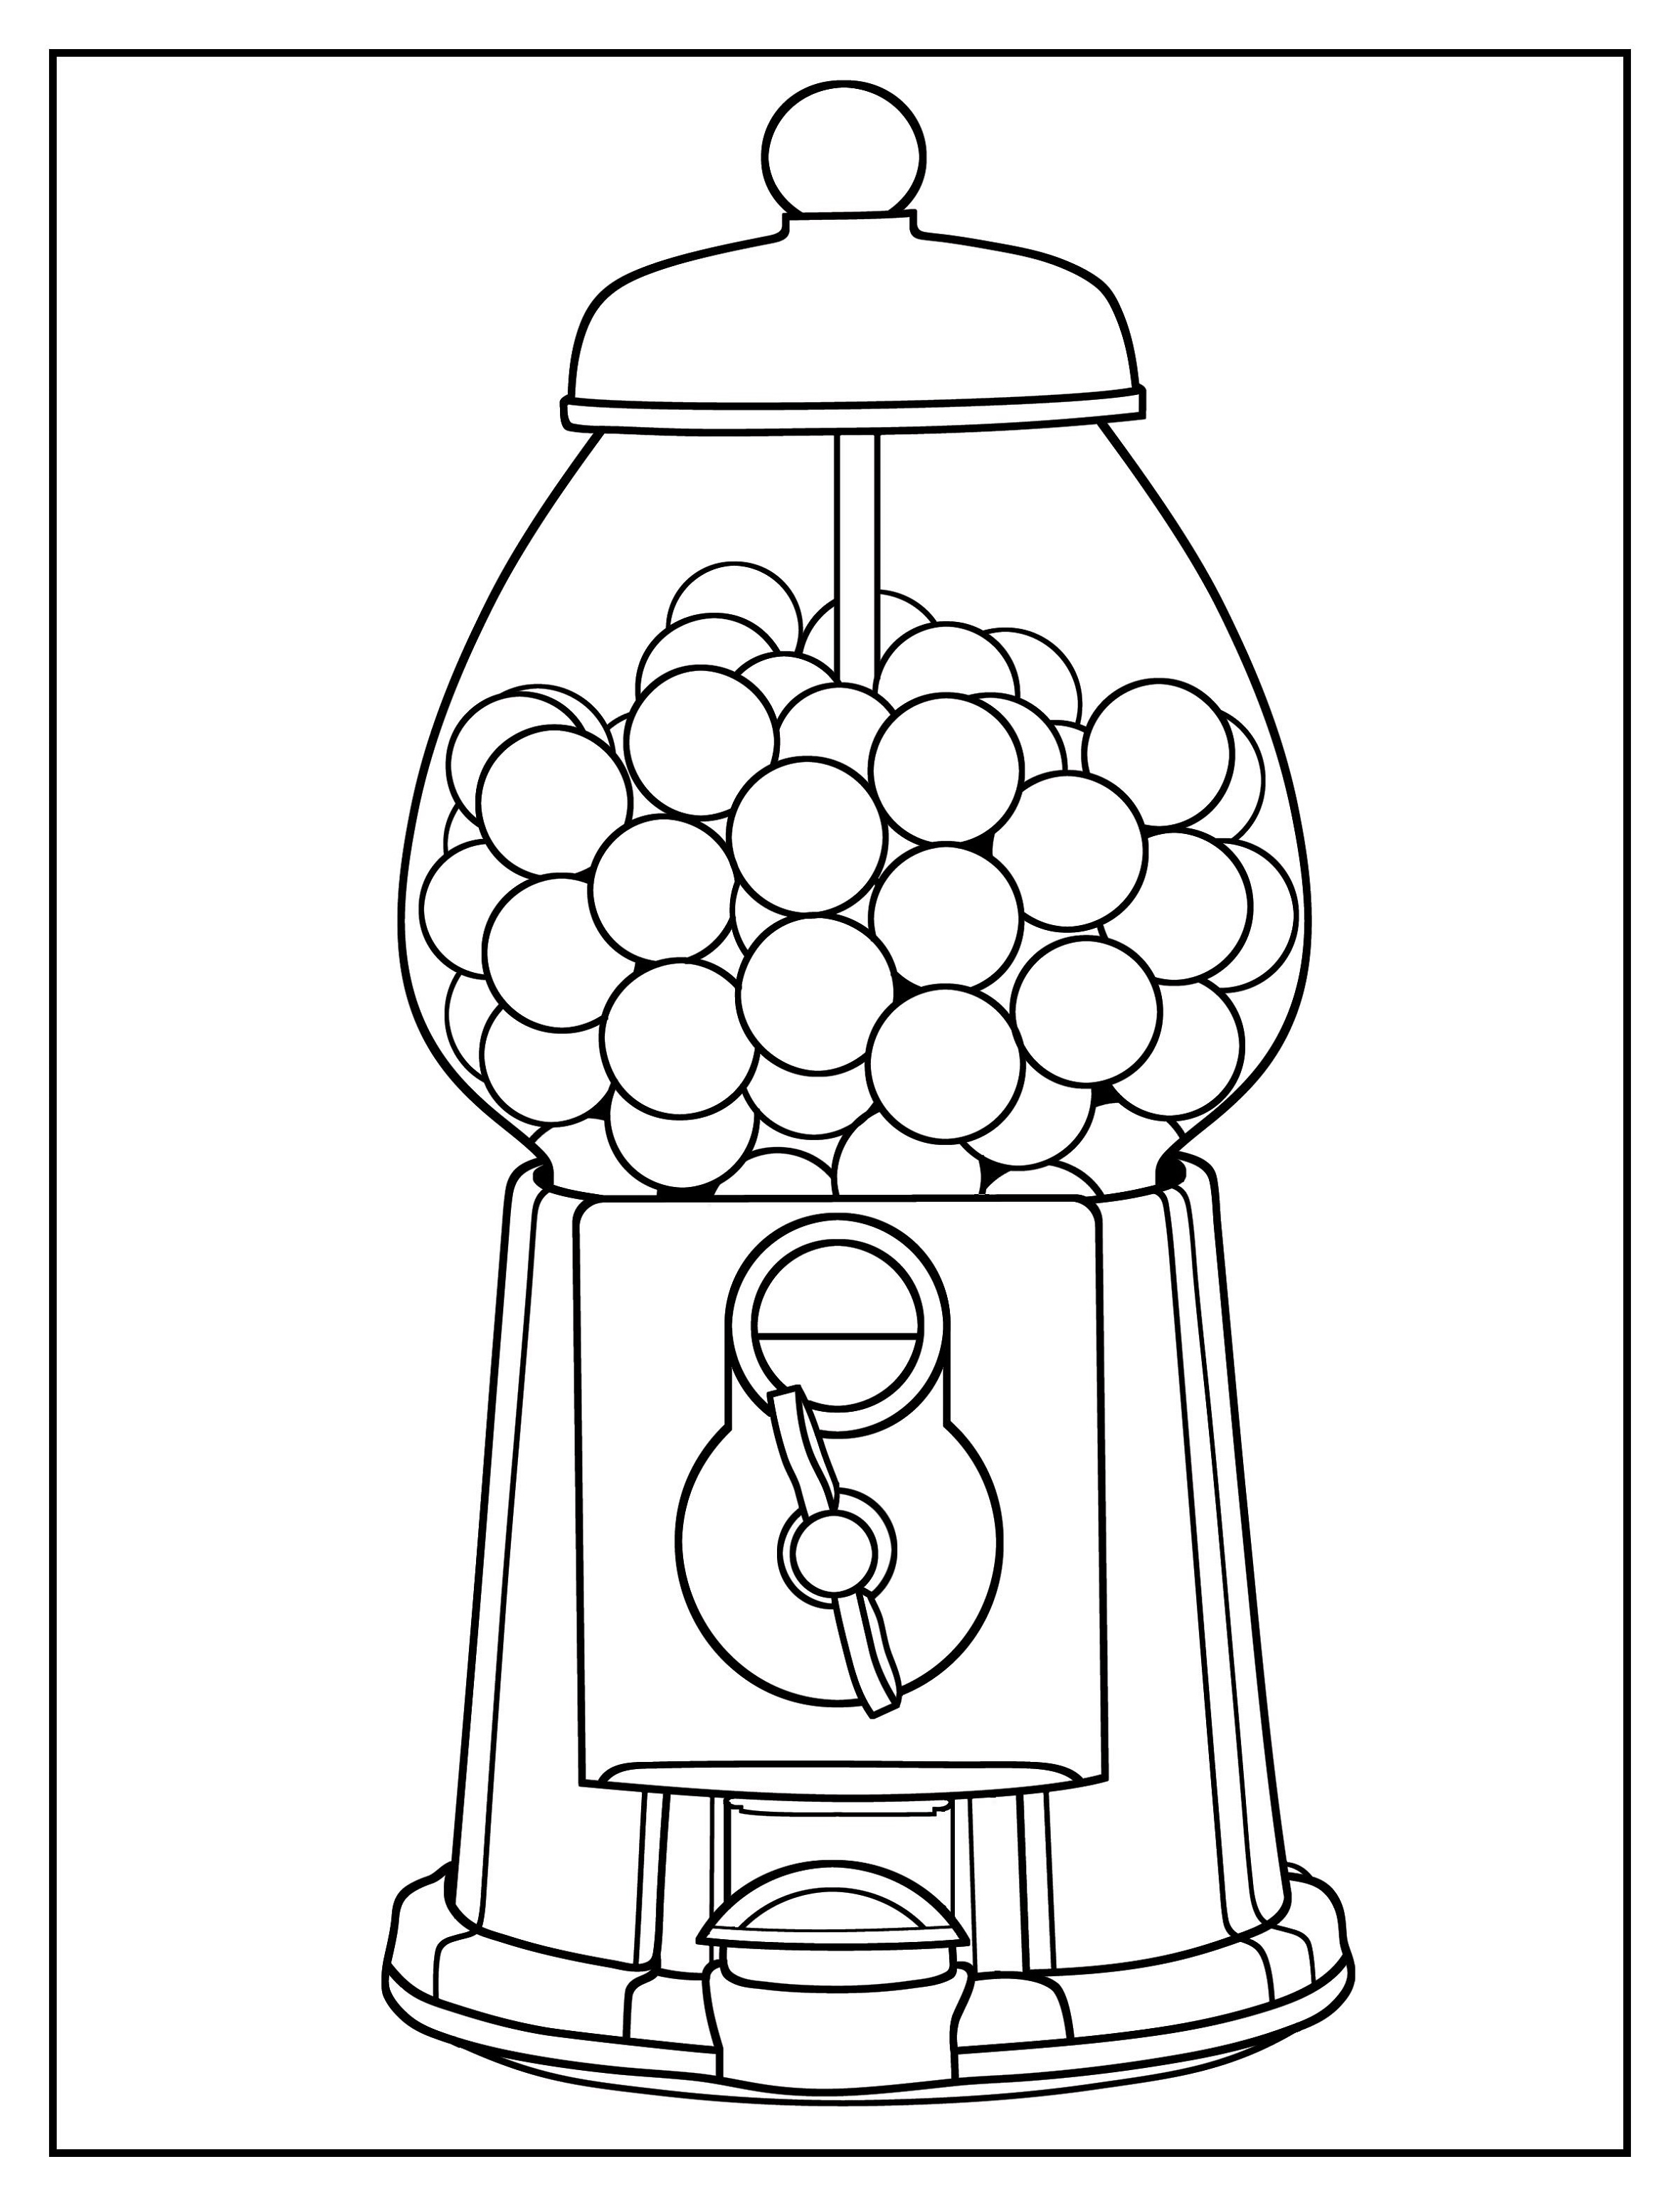 Gumball-Machine-Coloring-Page-Pictures